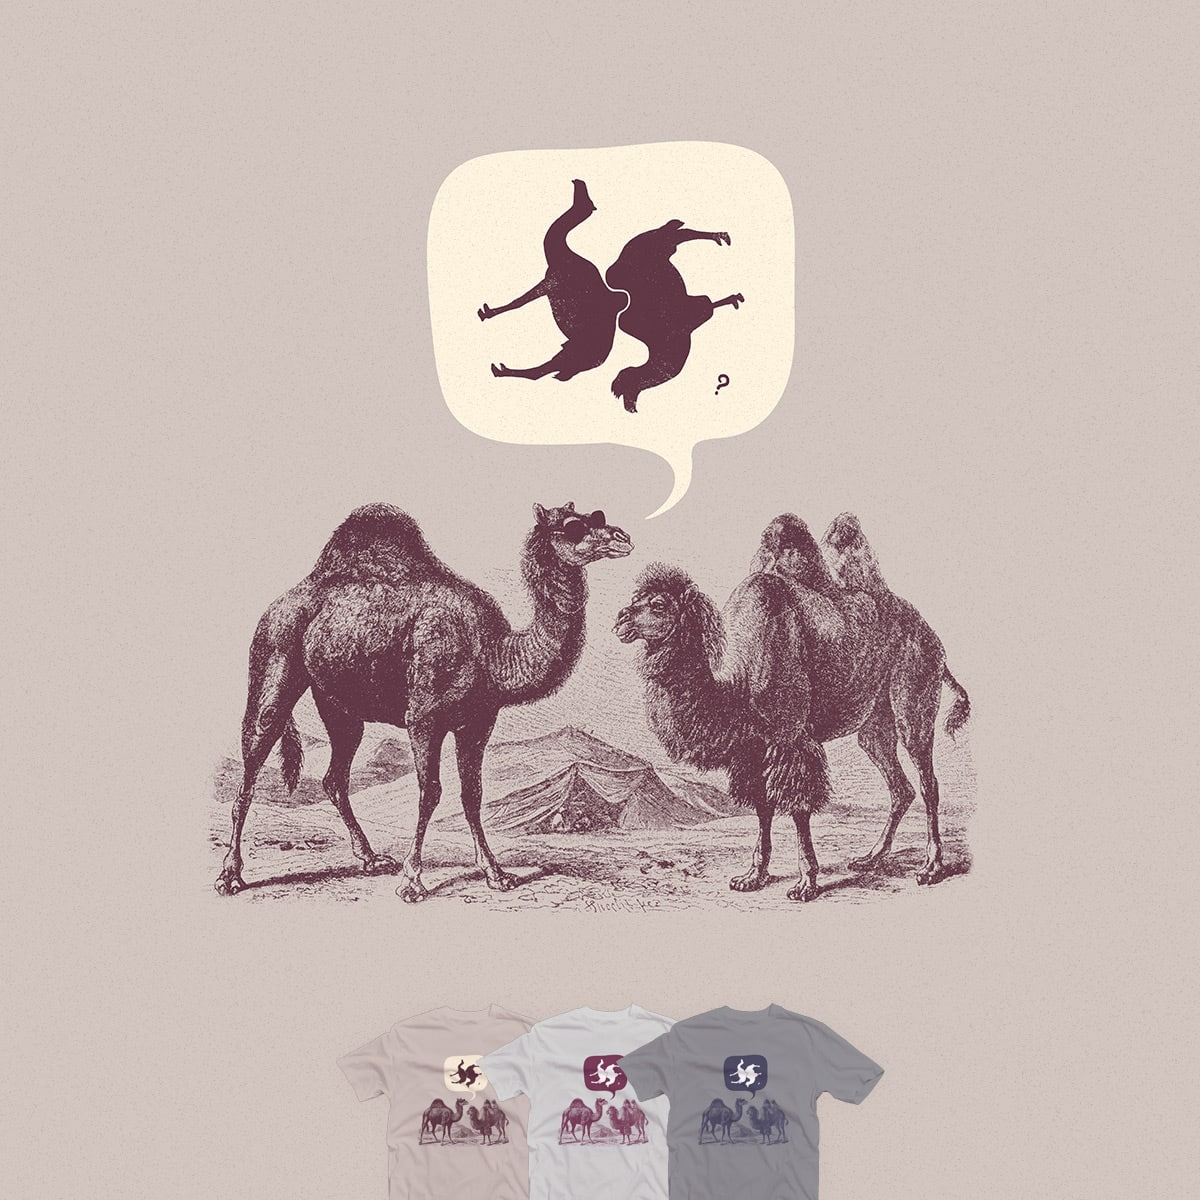 Wild Thing by JacquesMaes on Threadless